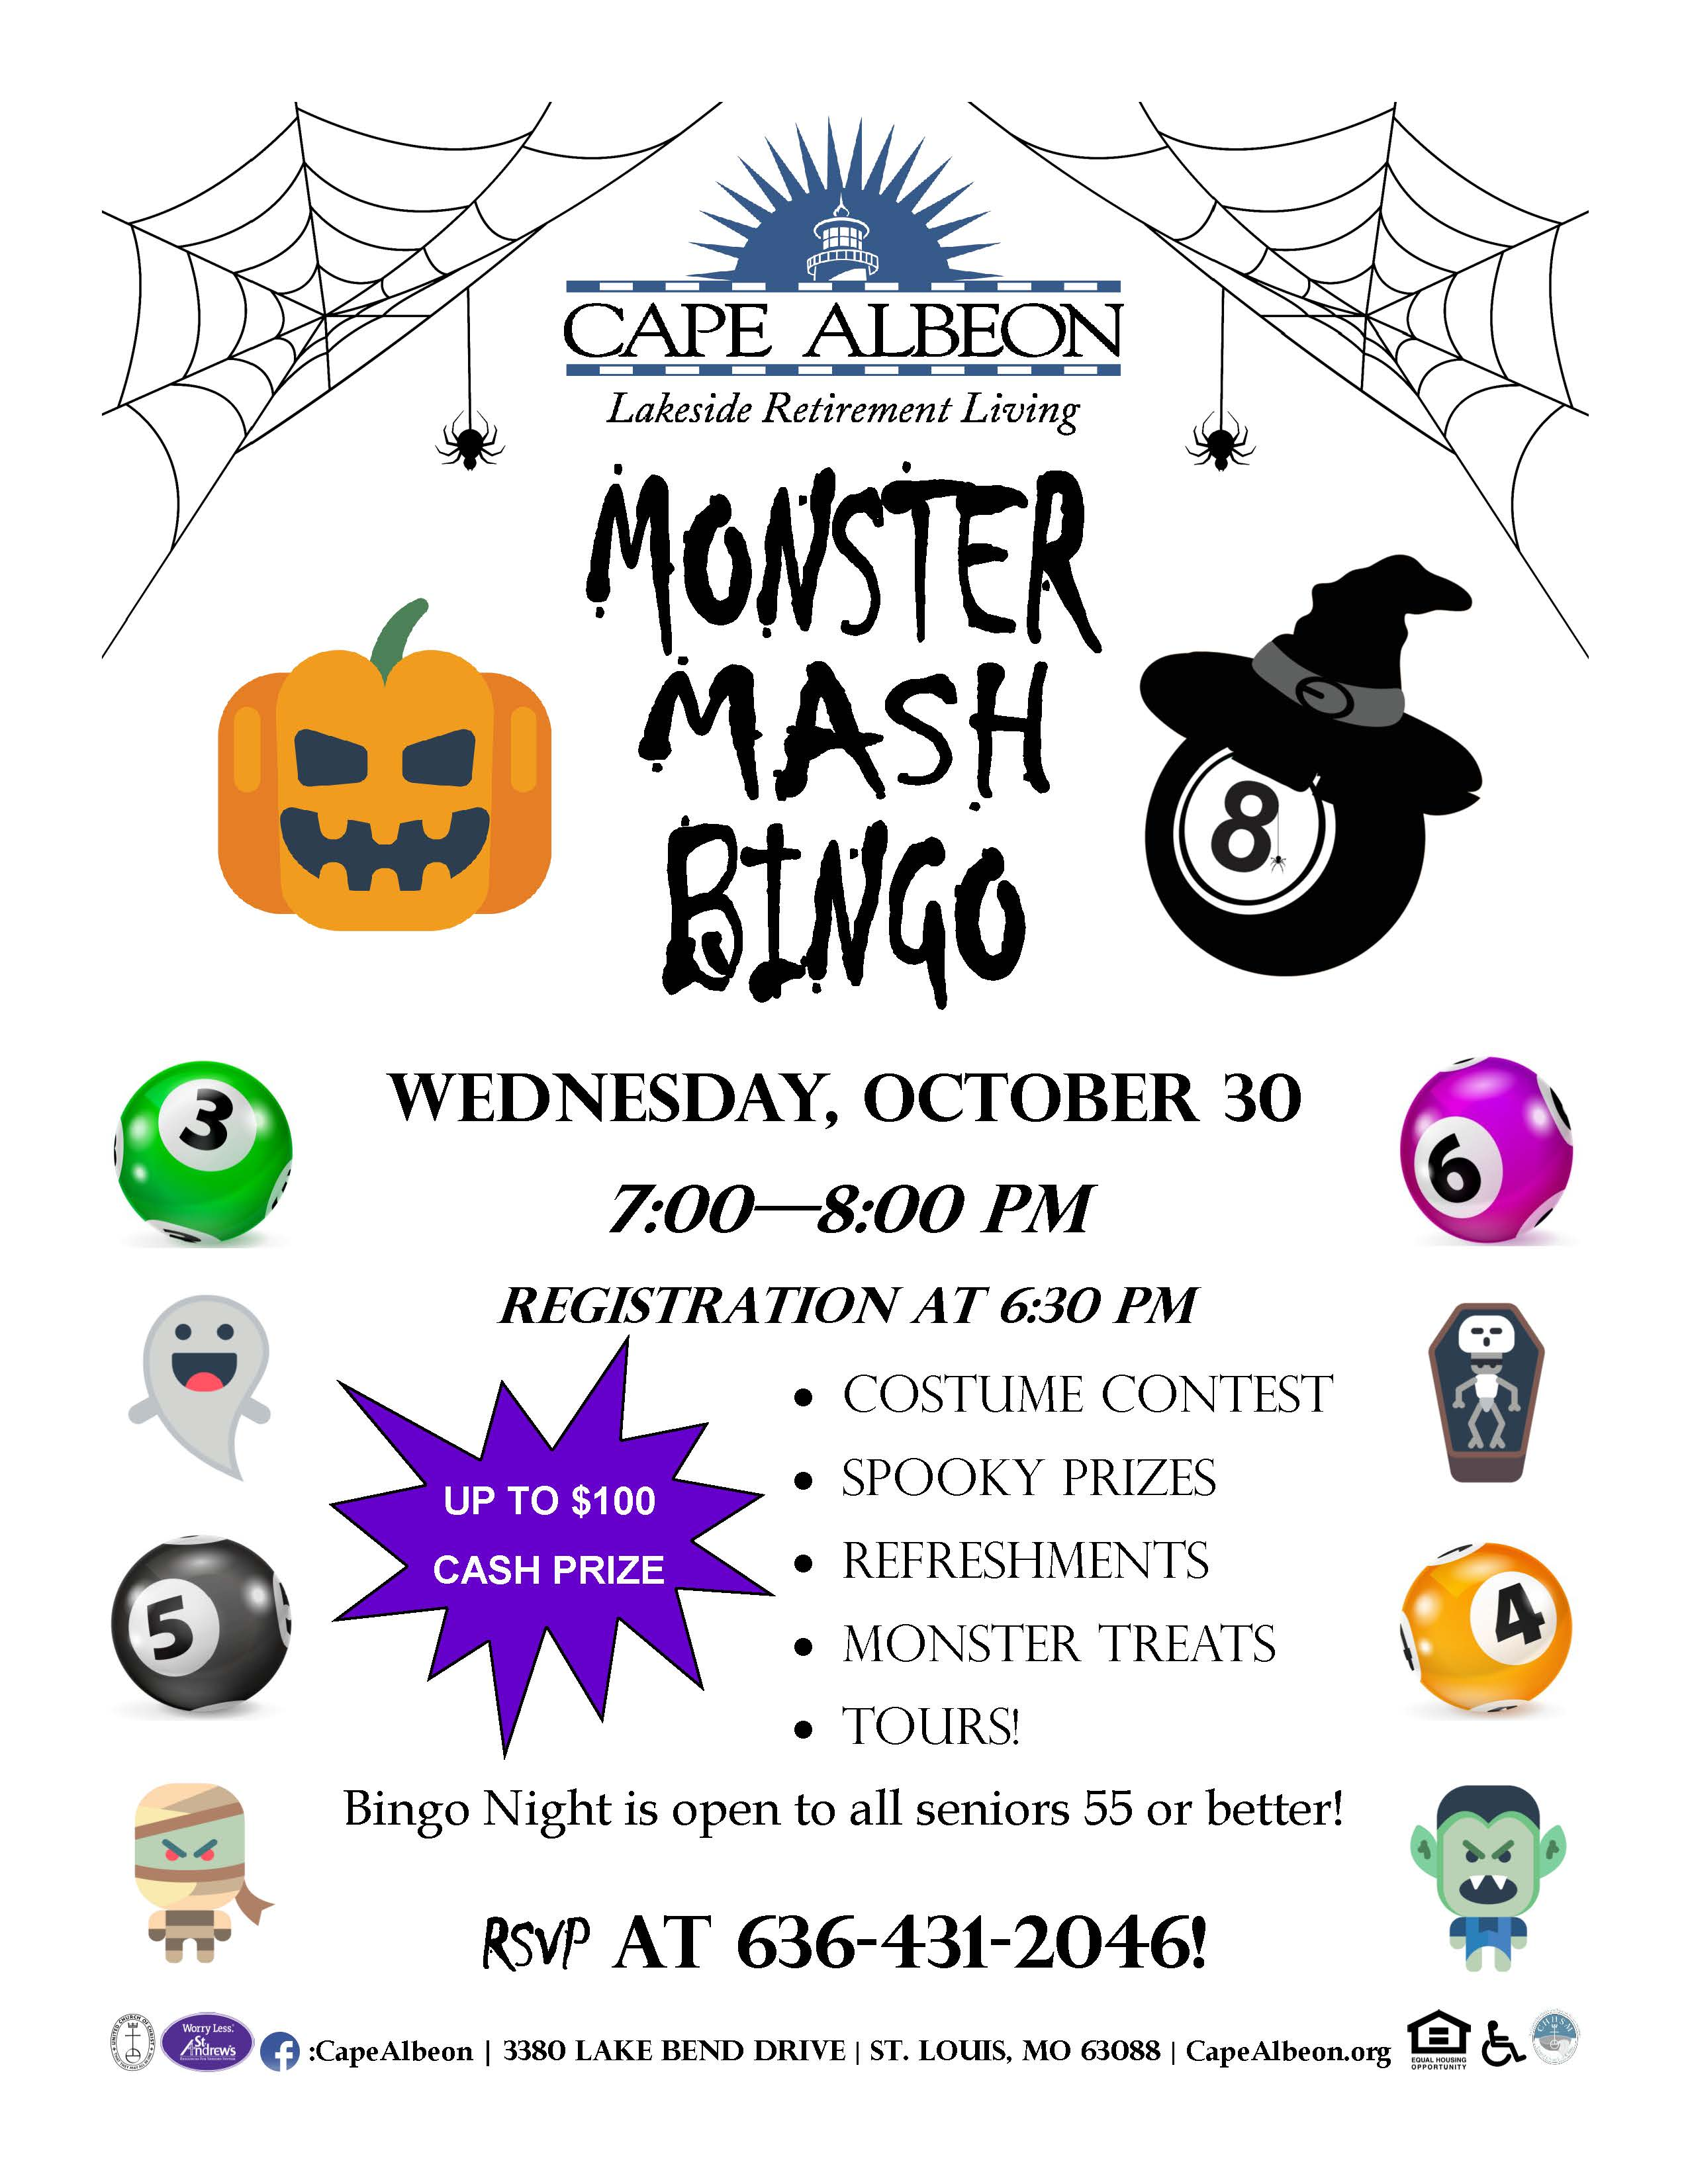 Cape Albeon hosts Monster Mash Bingo St. Louis